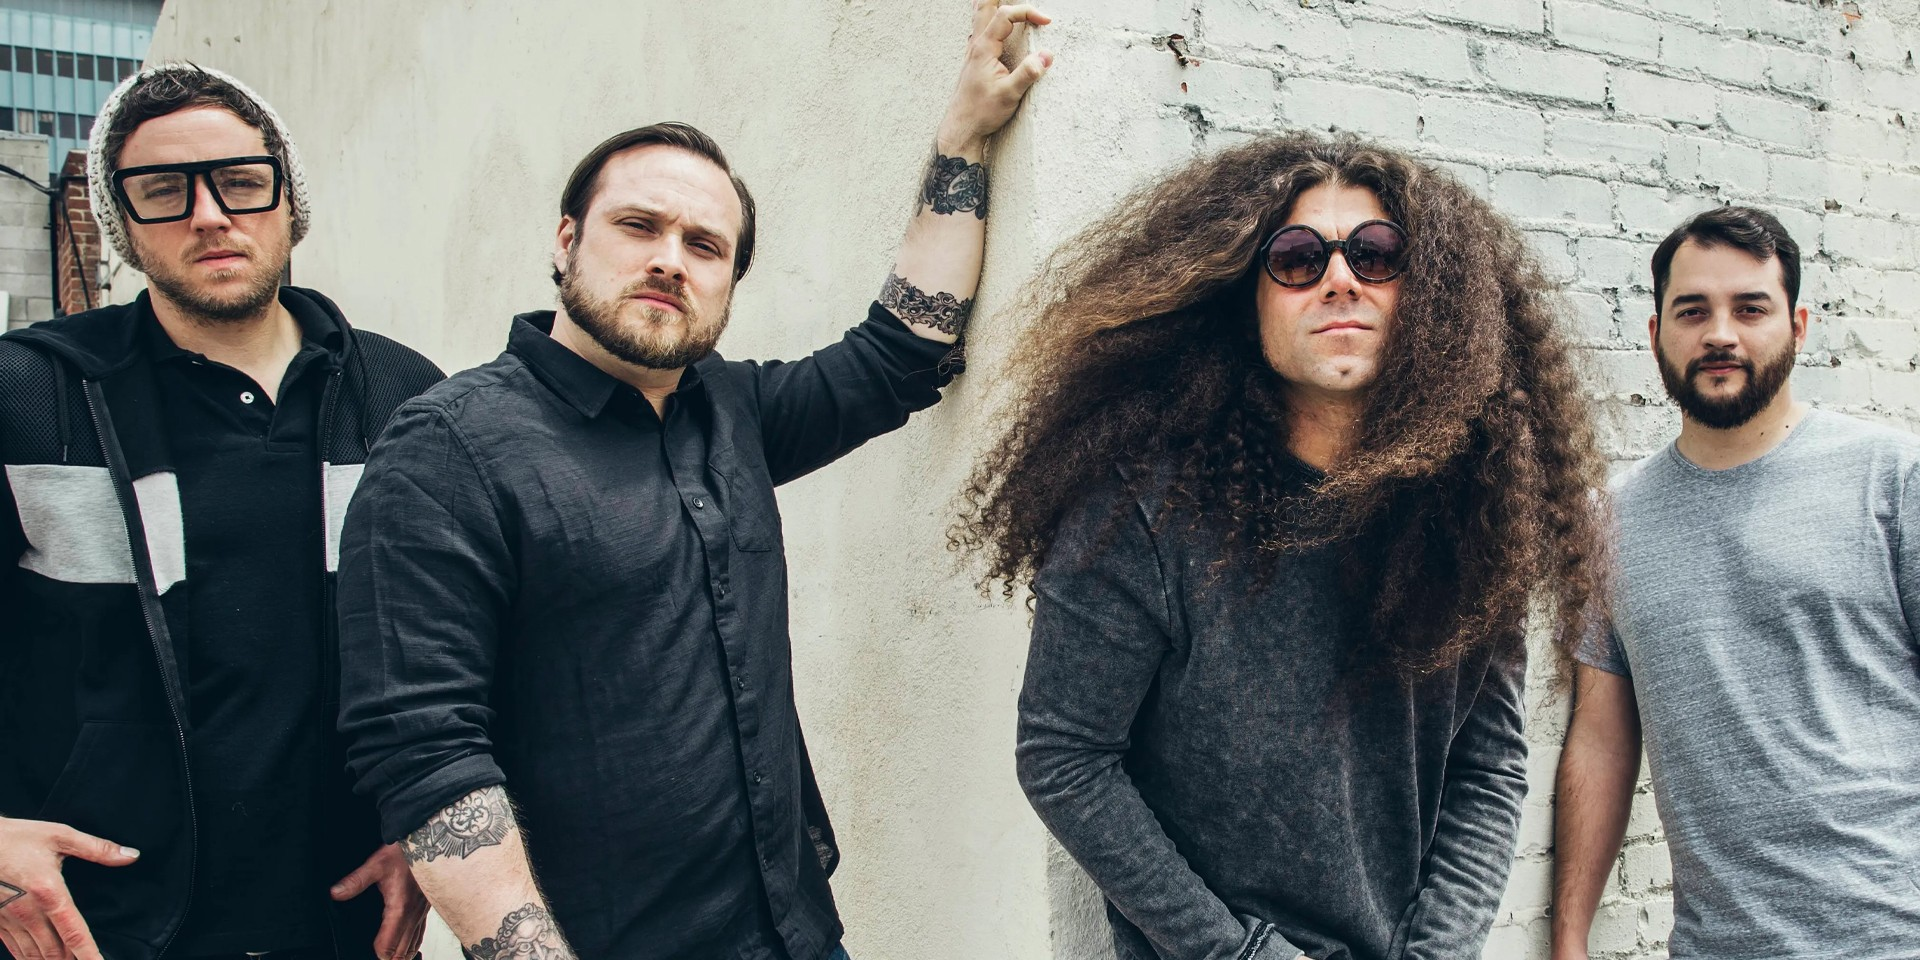 Coheed and Cambria return with hard-hitting music video 'Shoulders' – watch